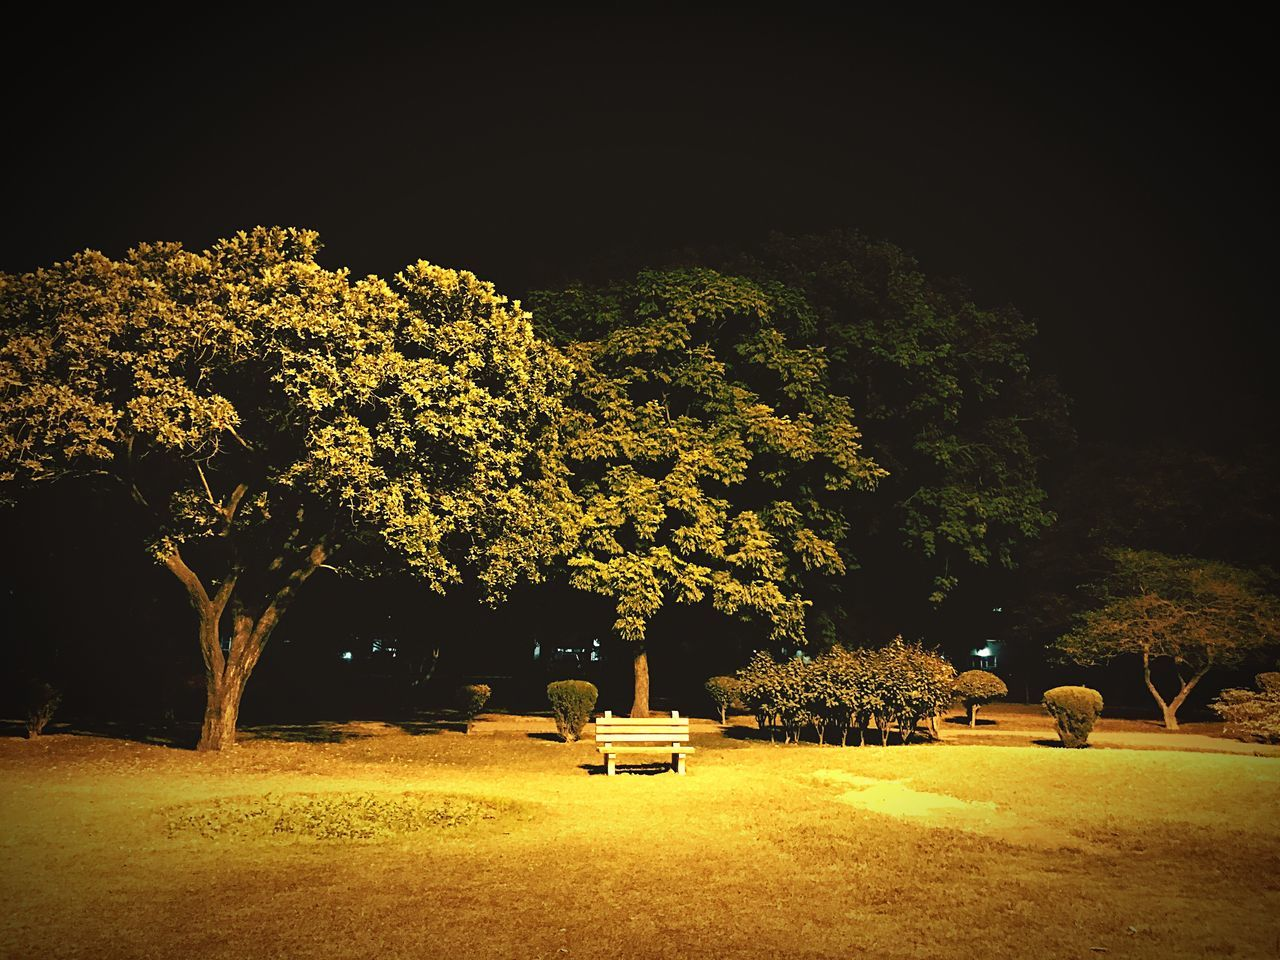 tree, nature, growth, beauty in nature, park - man made space, tranquility, tranquil scene, branch, no people, scenics, landscape, outdoors, night, illuminated, grass, sky